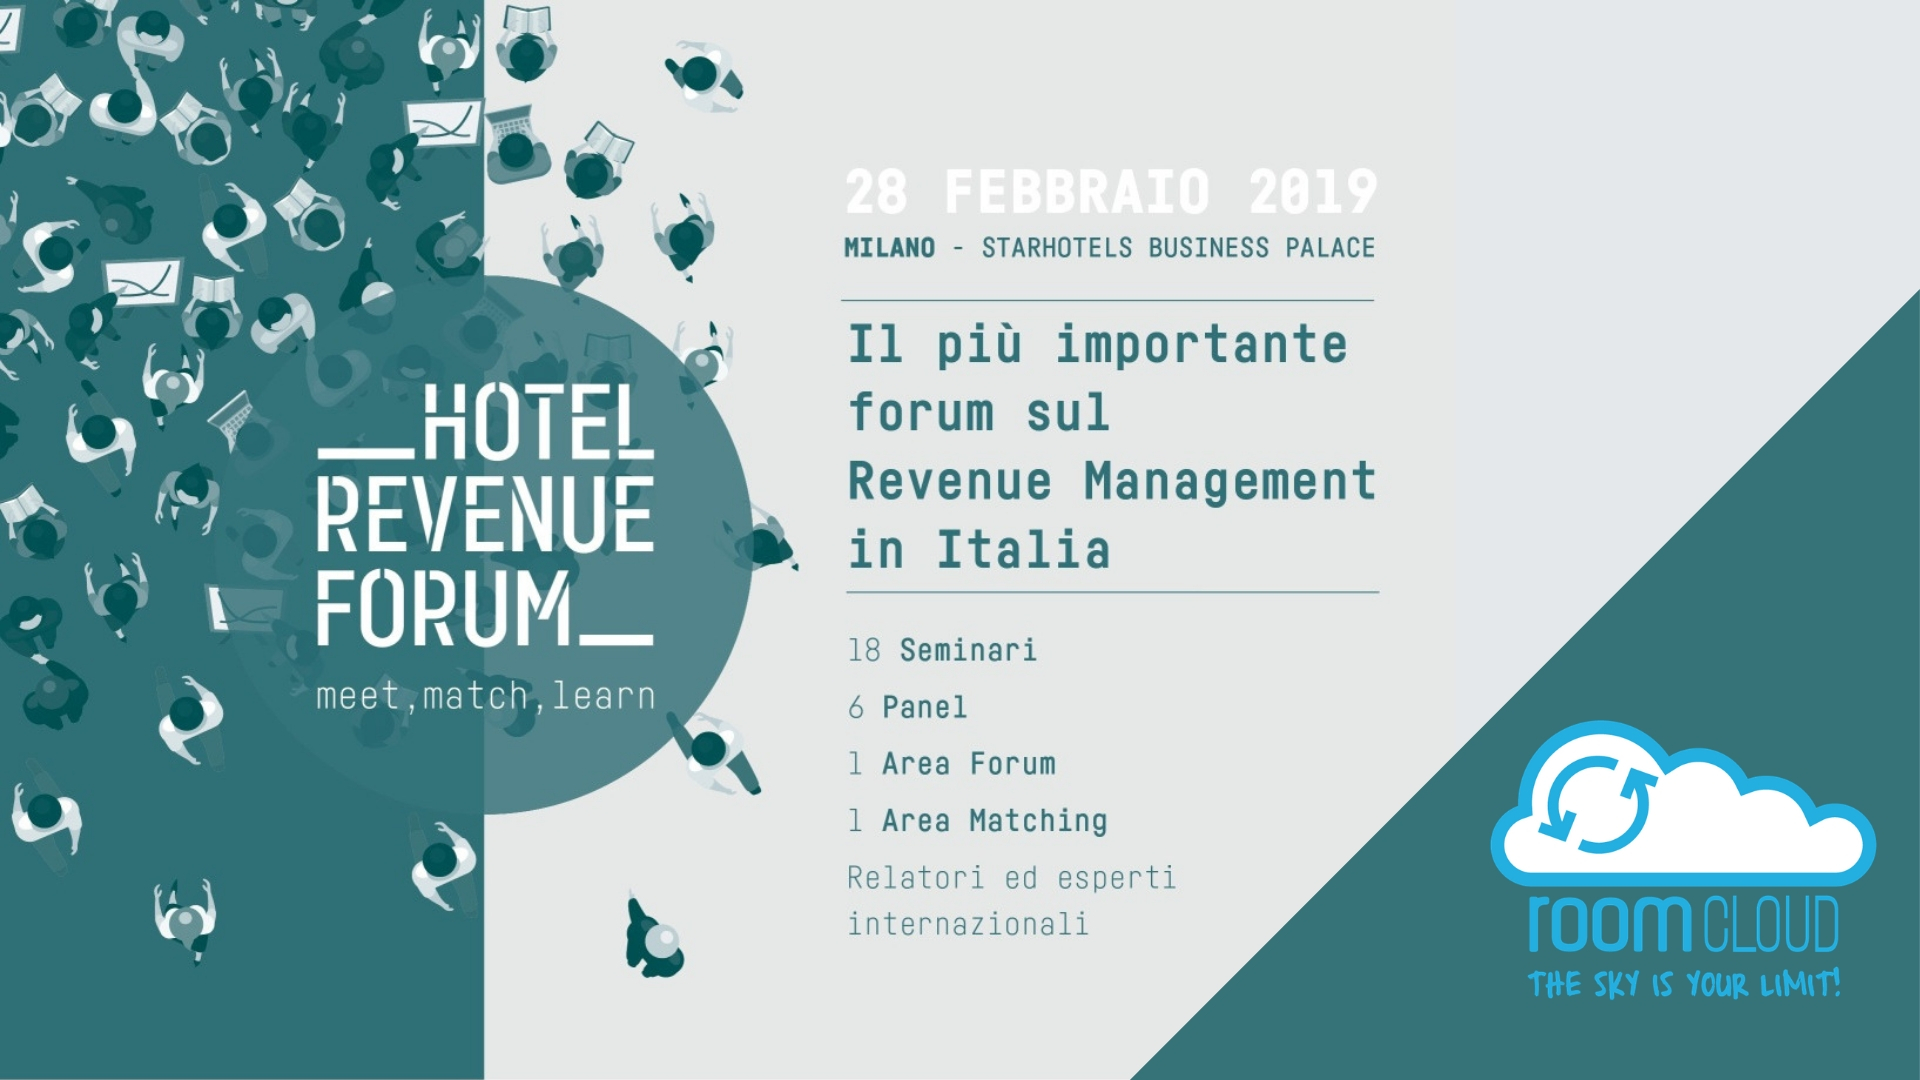 Hotel Revenue Forum 2019